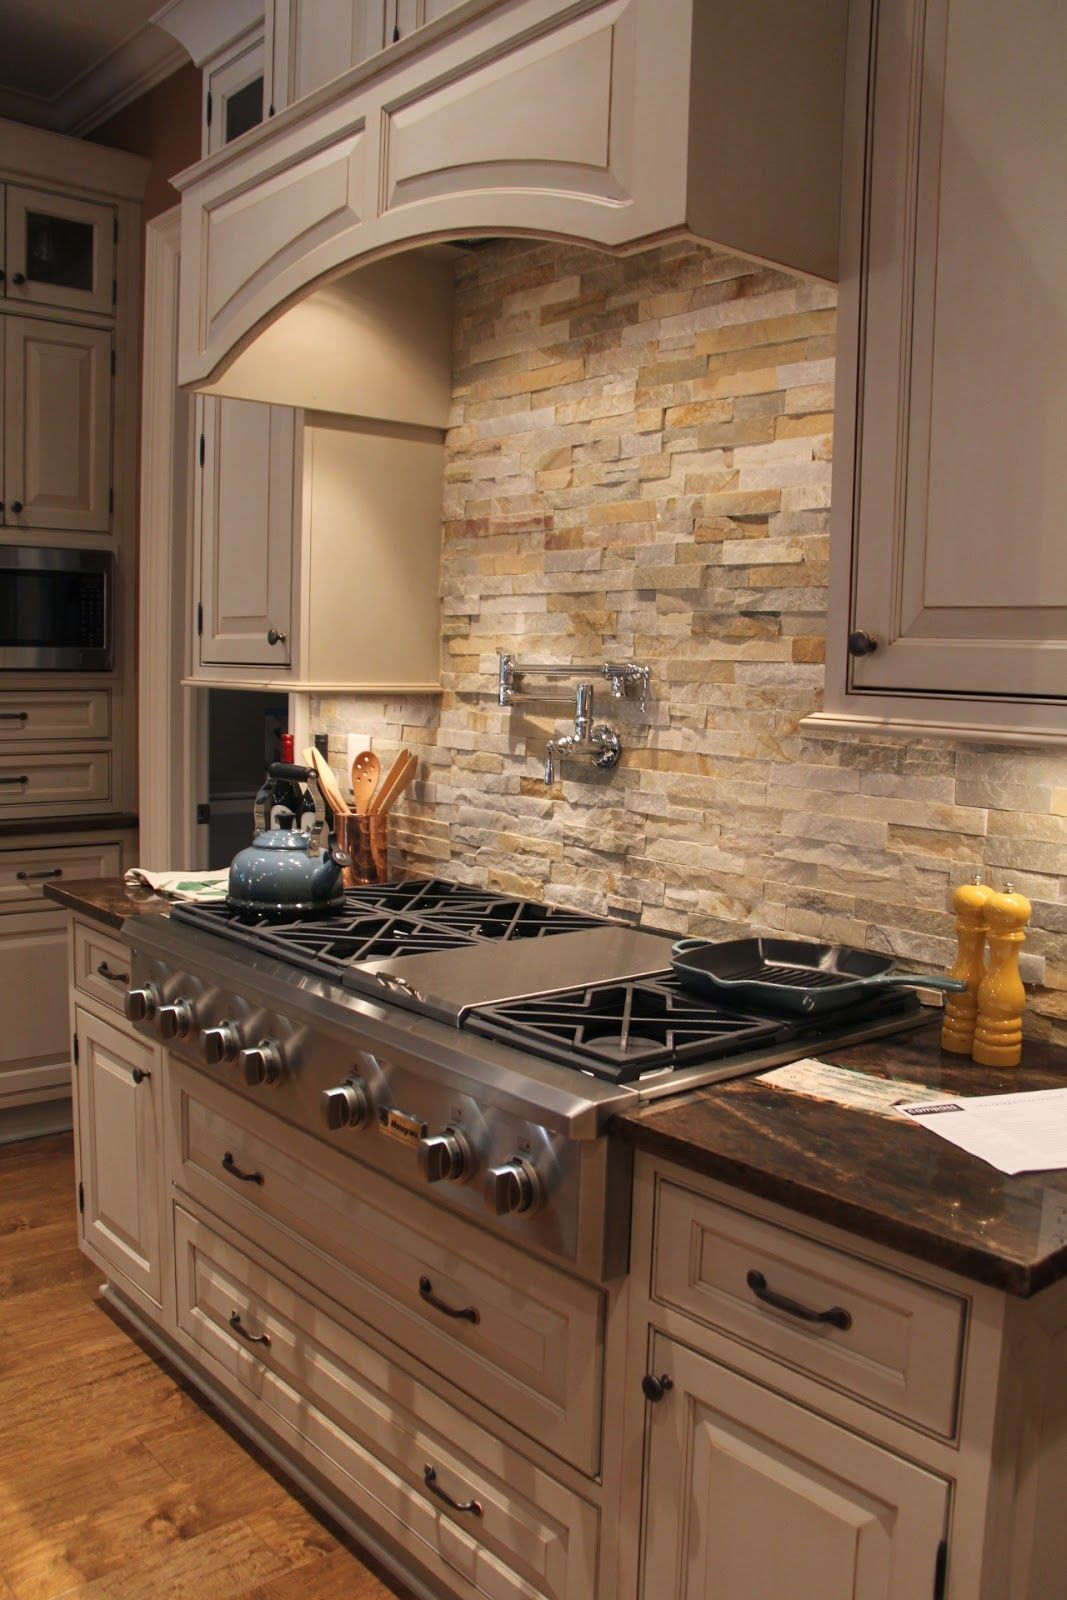 tile backsplash ideas kitchen thrift and shout my 2014 parade of homes review columbus 6120